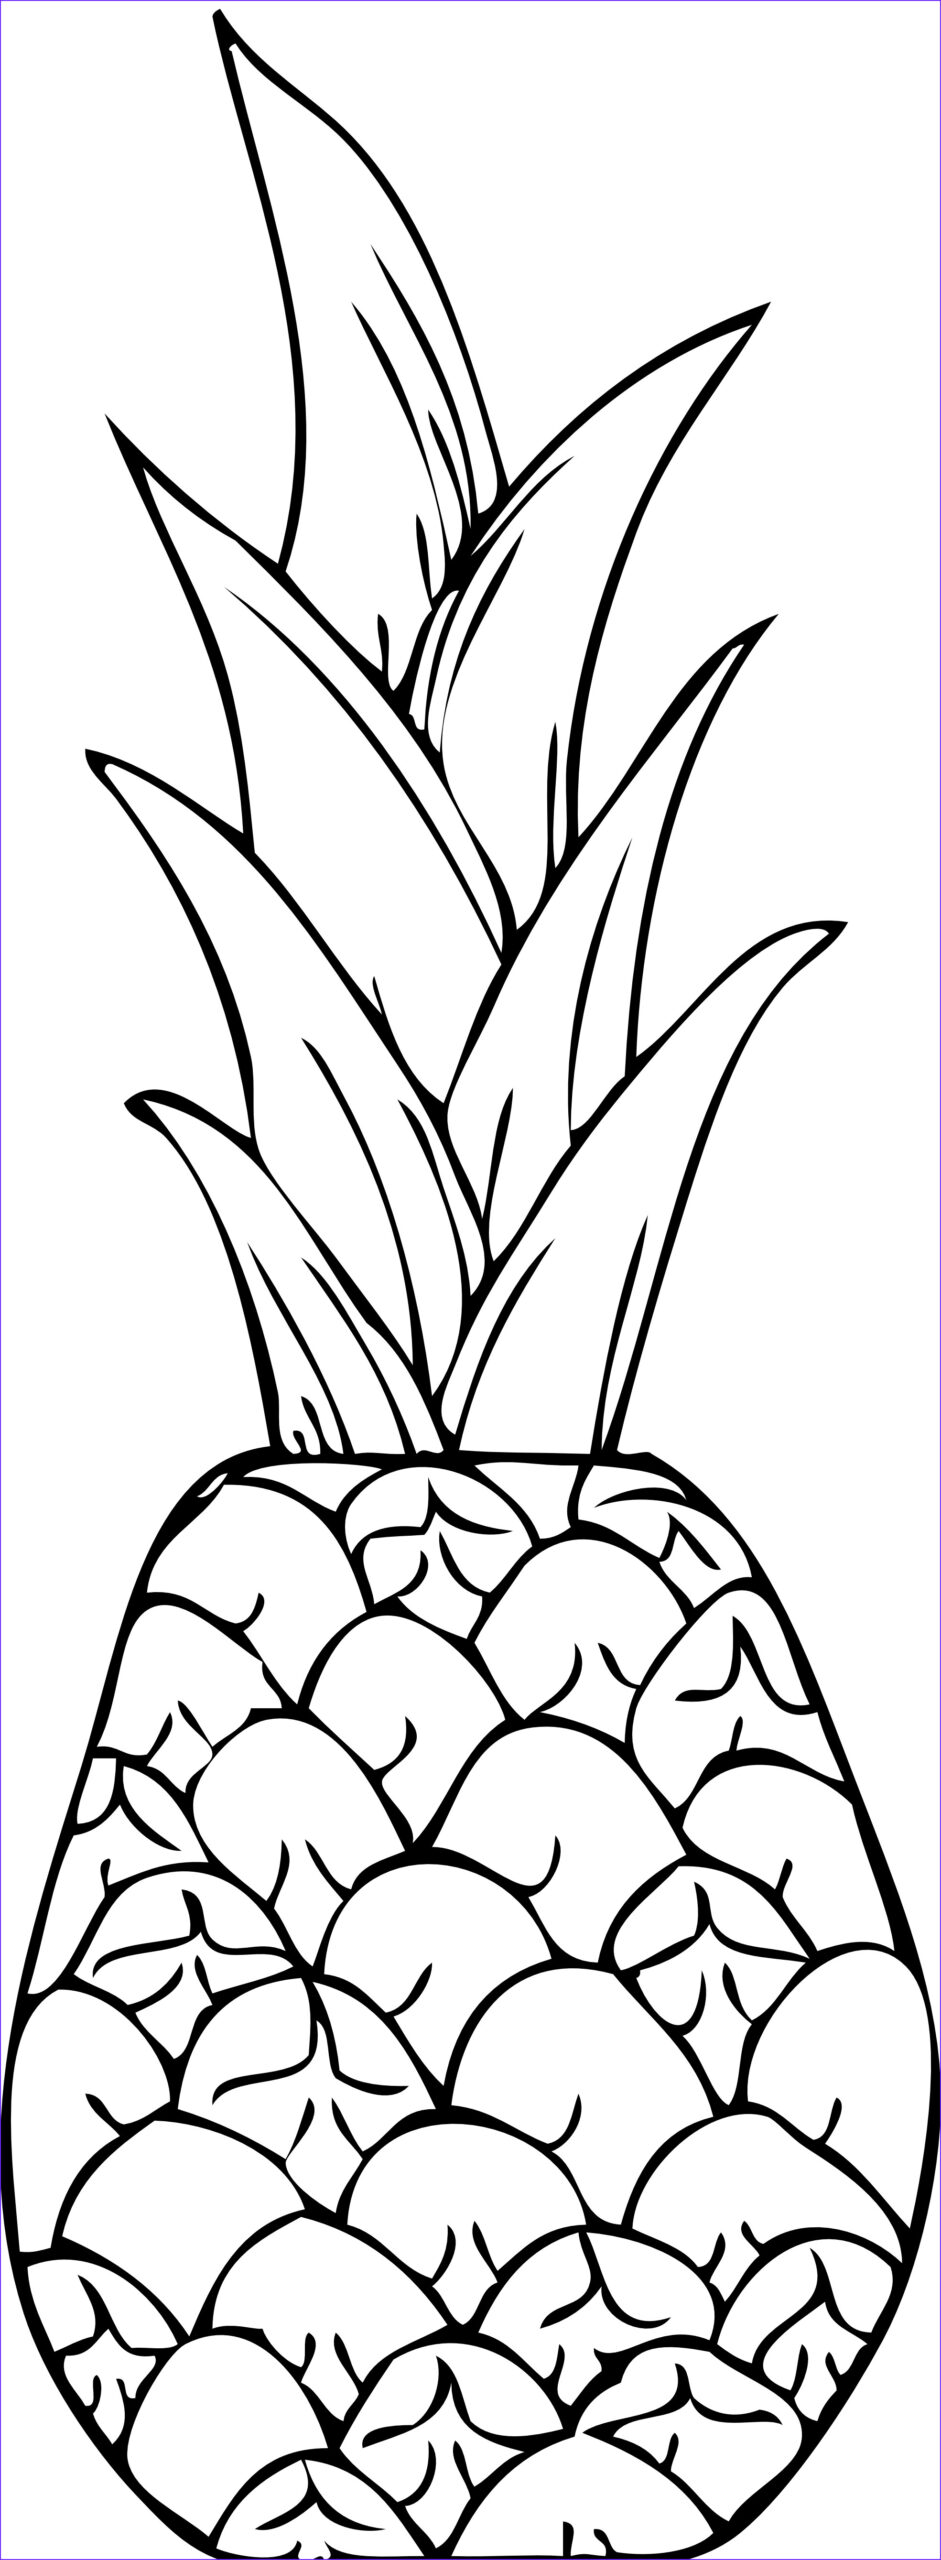 Coloring Paper to Print Cool Photos Free Printable Pineapple Coloring Pages for Kids